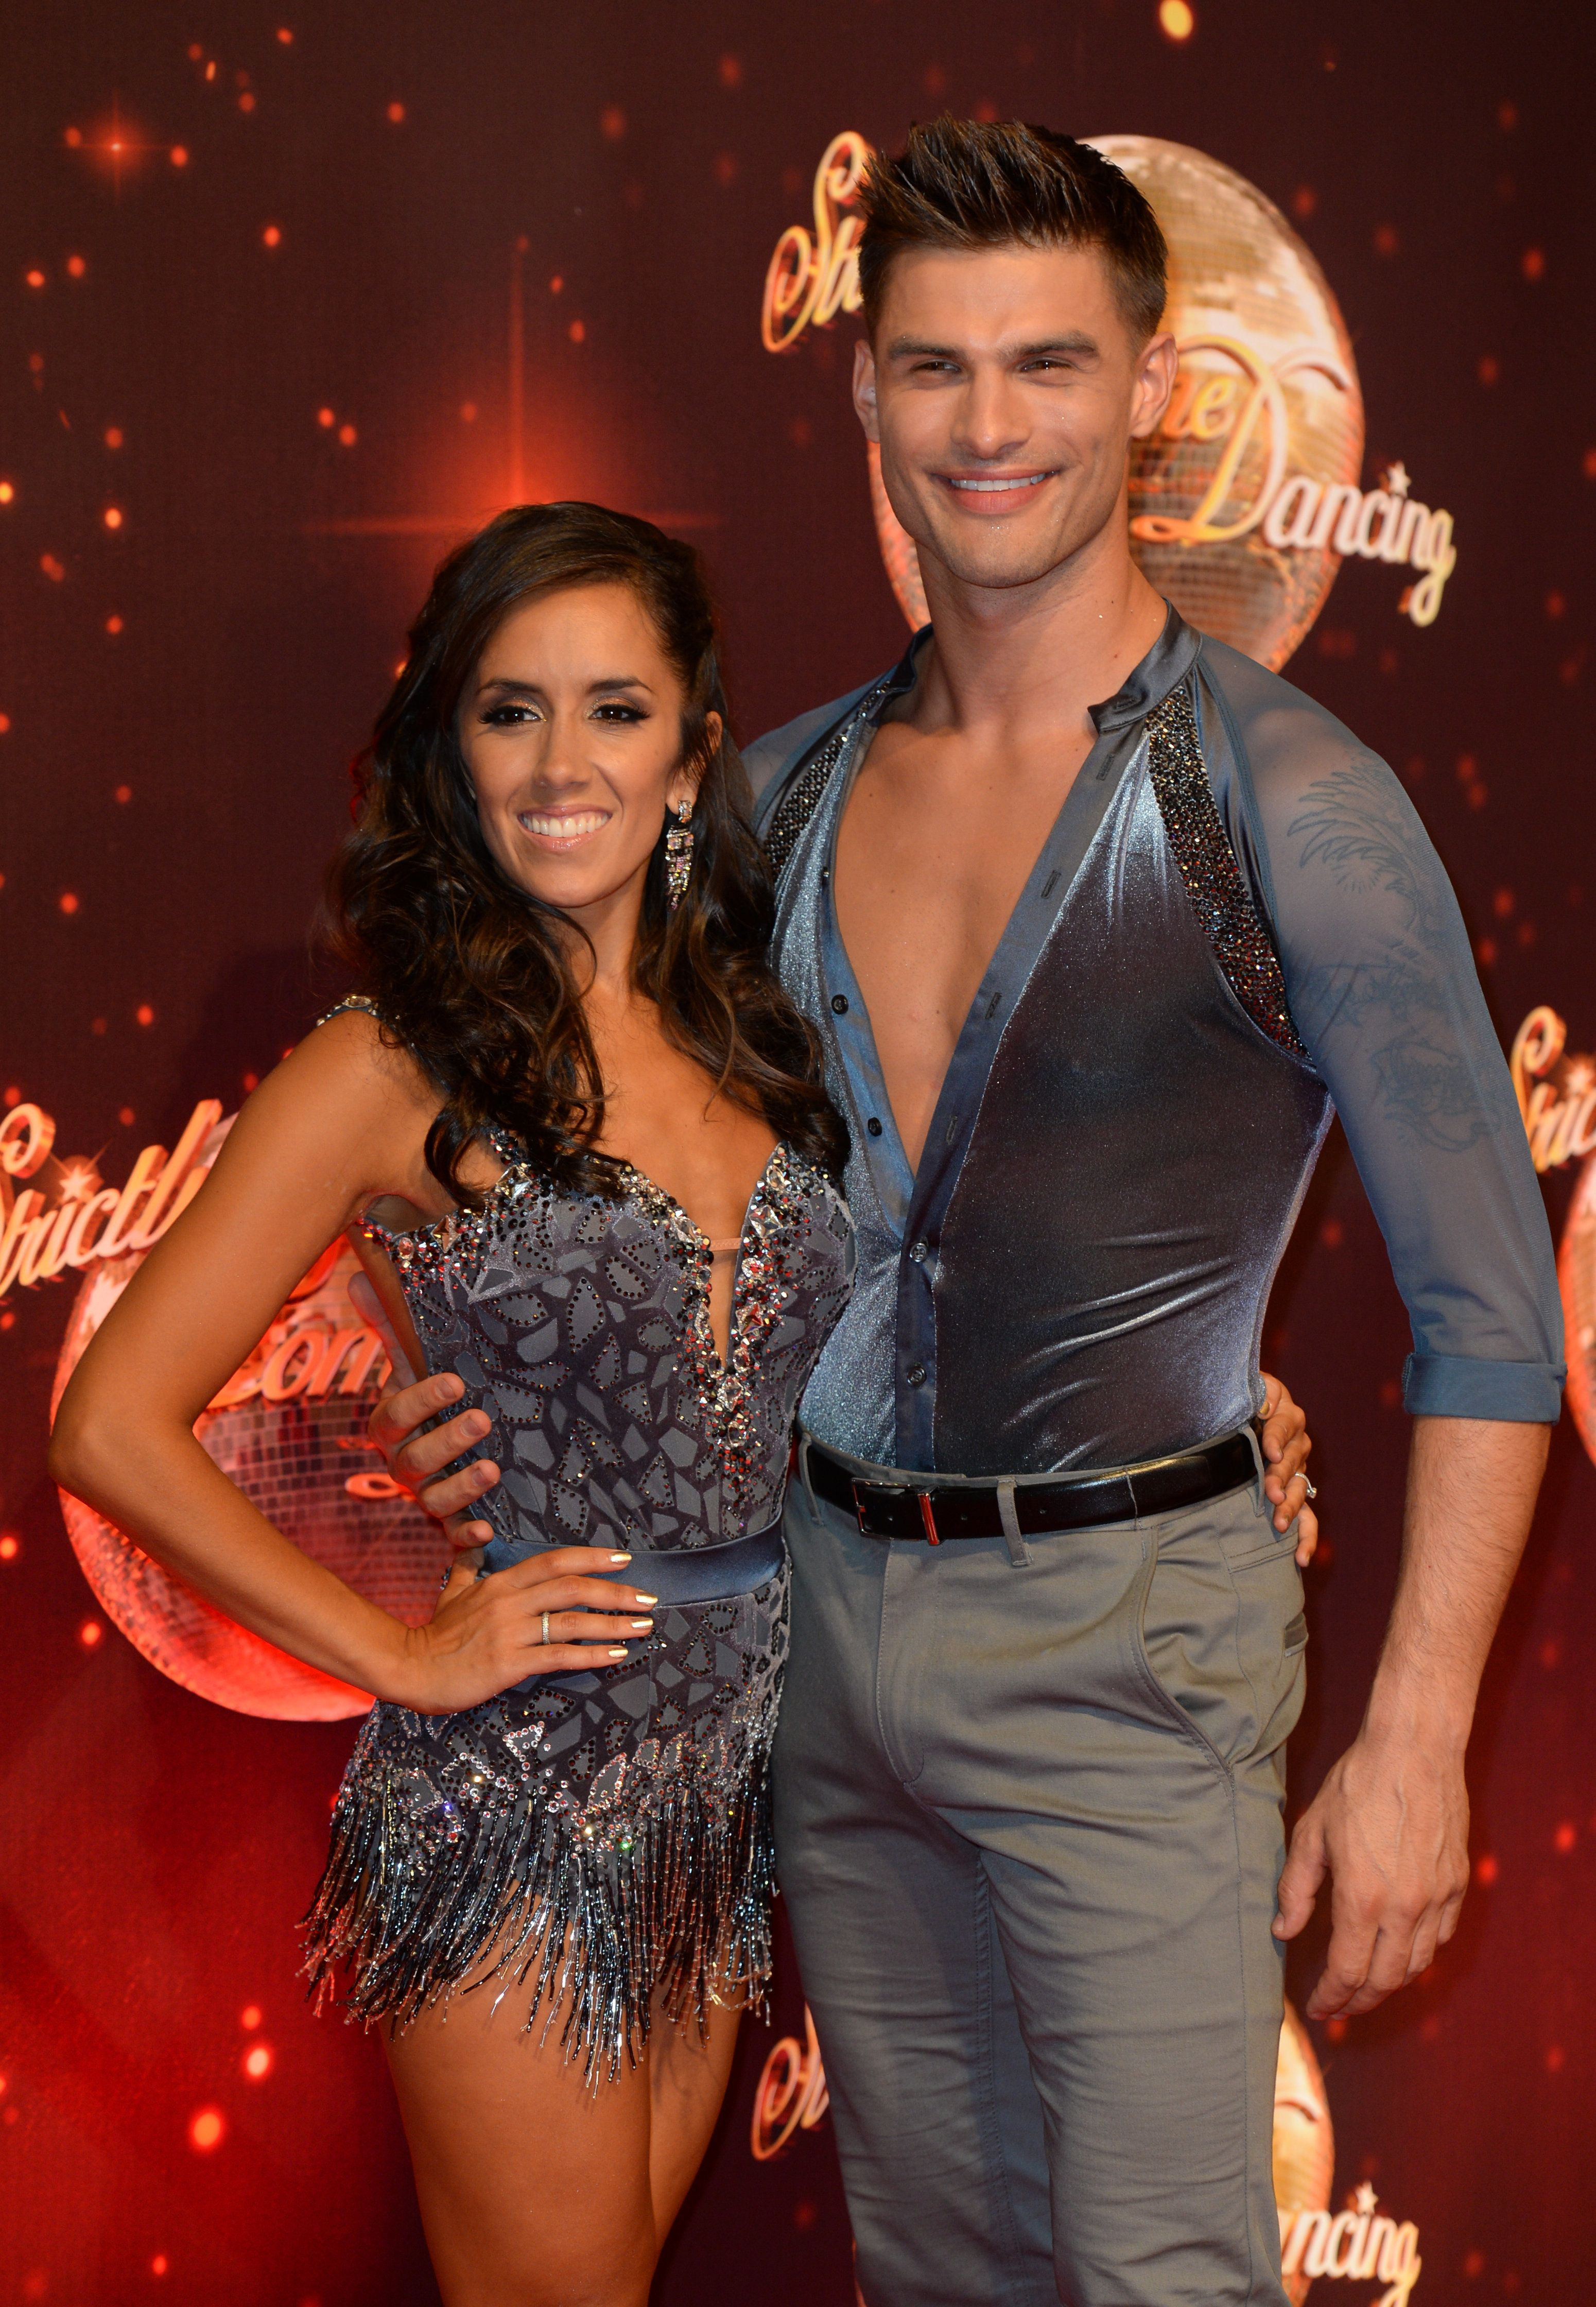 Strictly Come Dancing Professionals Janette Manrara And Aljaz